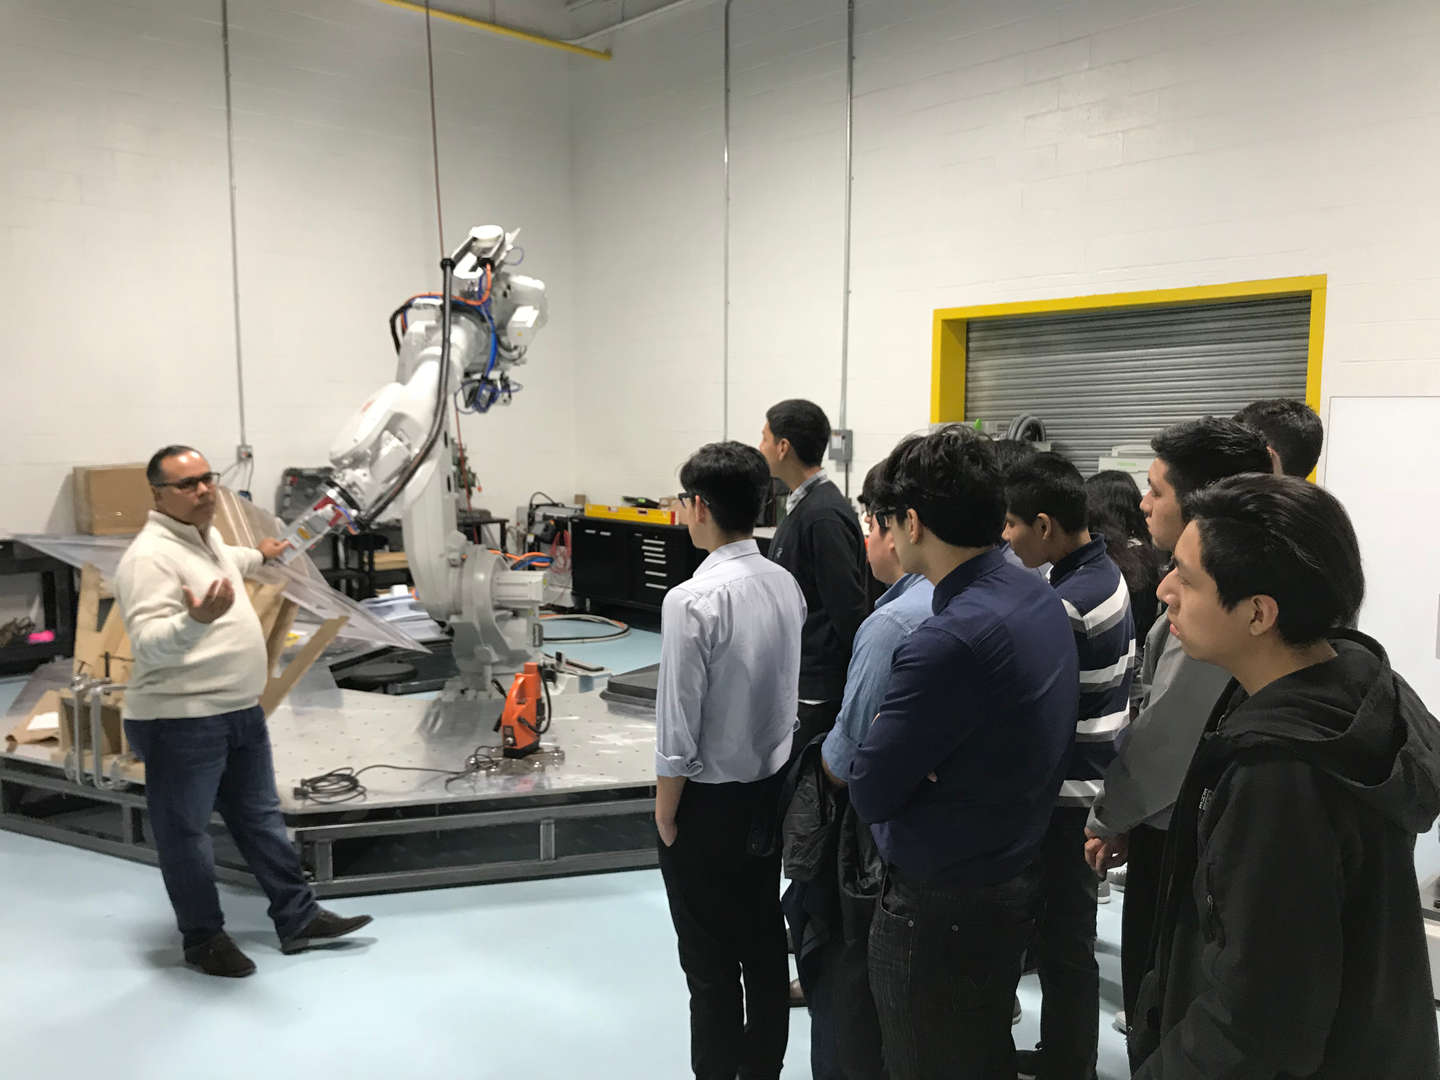 Students viewing robotic hardware